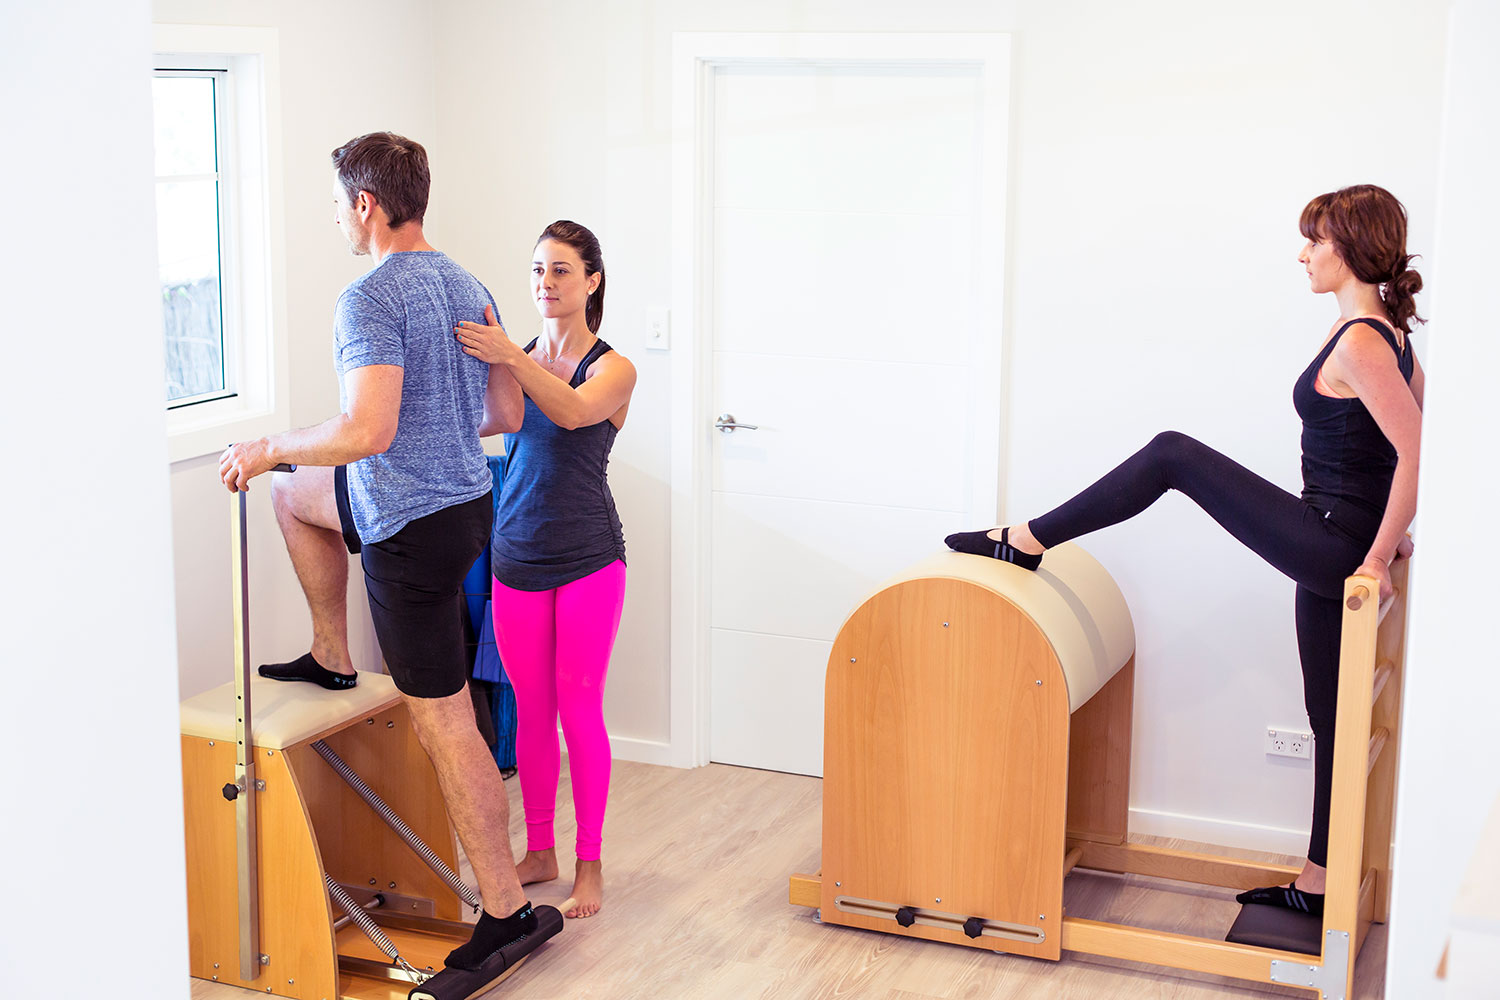 Meet us in the studio - New to I AM Pilates offer: Initial Consultation + 1 Private Studio Session = $150Our new client offer is designed to help you to understand more about the Pilates principals, get familiar with the studio machinery and to discuss your goals and needs. After the initial consultation you will enjoy another private session where you will have a better grasp of the method whilst exploring the repertoire- all under the guidance of our amazing and highly trained Pilates instructor, Carolina Longo.